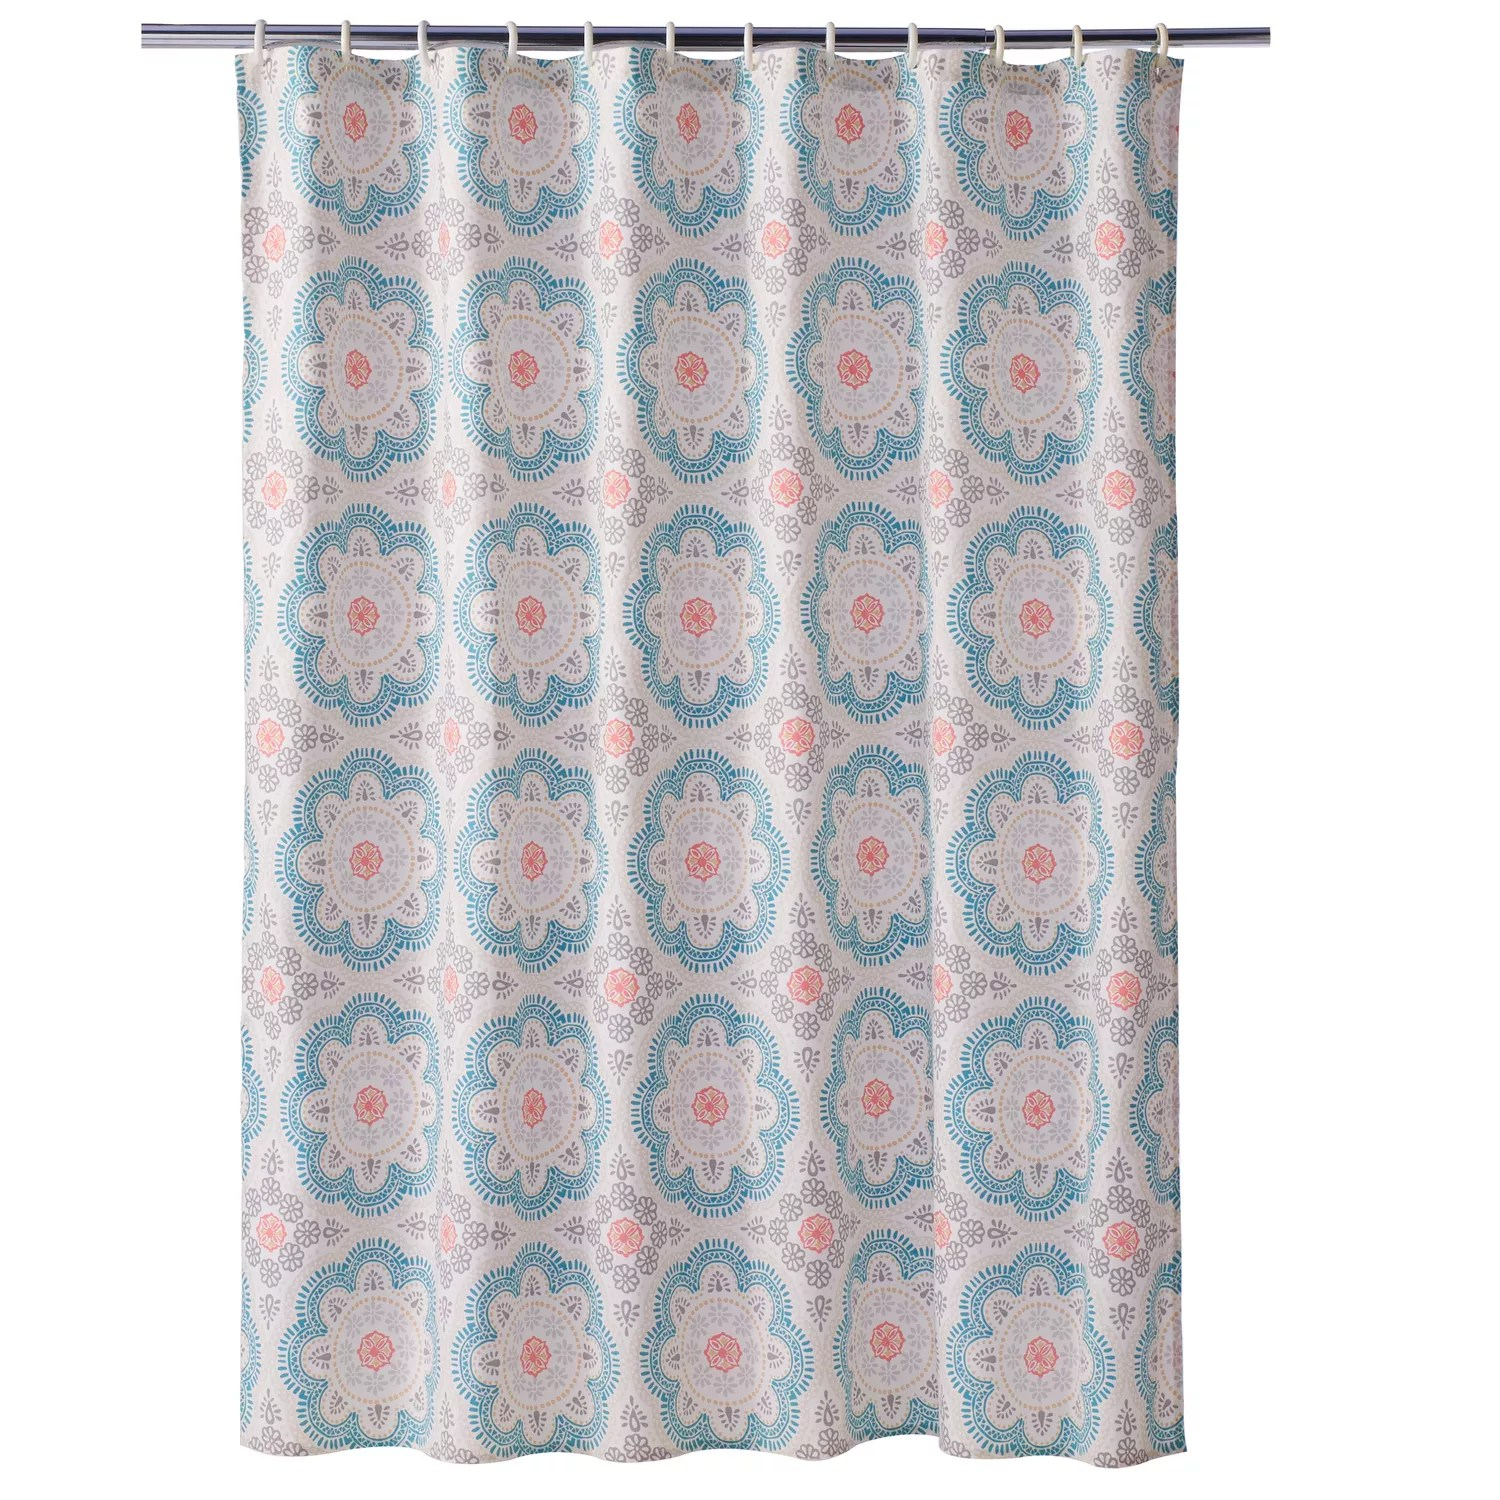 Kohls Com Shower Curtains Sonoma Goods For Life Medallion Shower Curtain